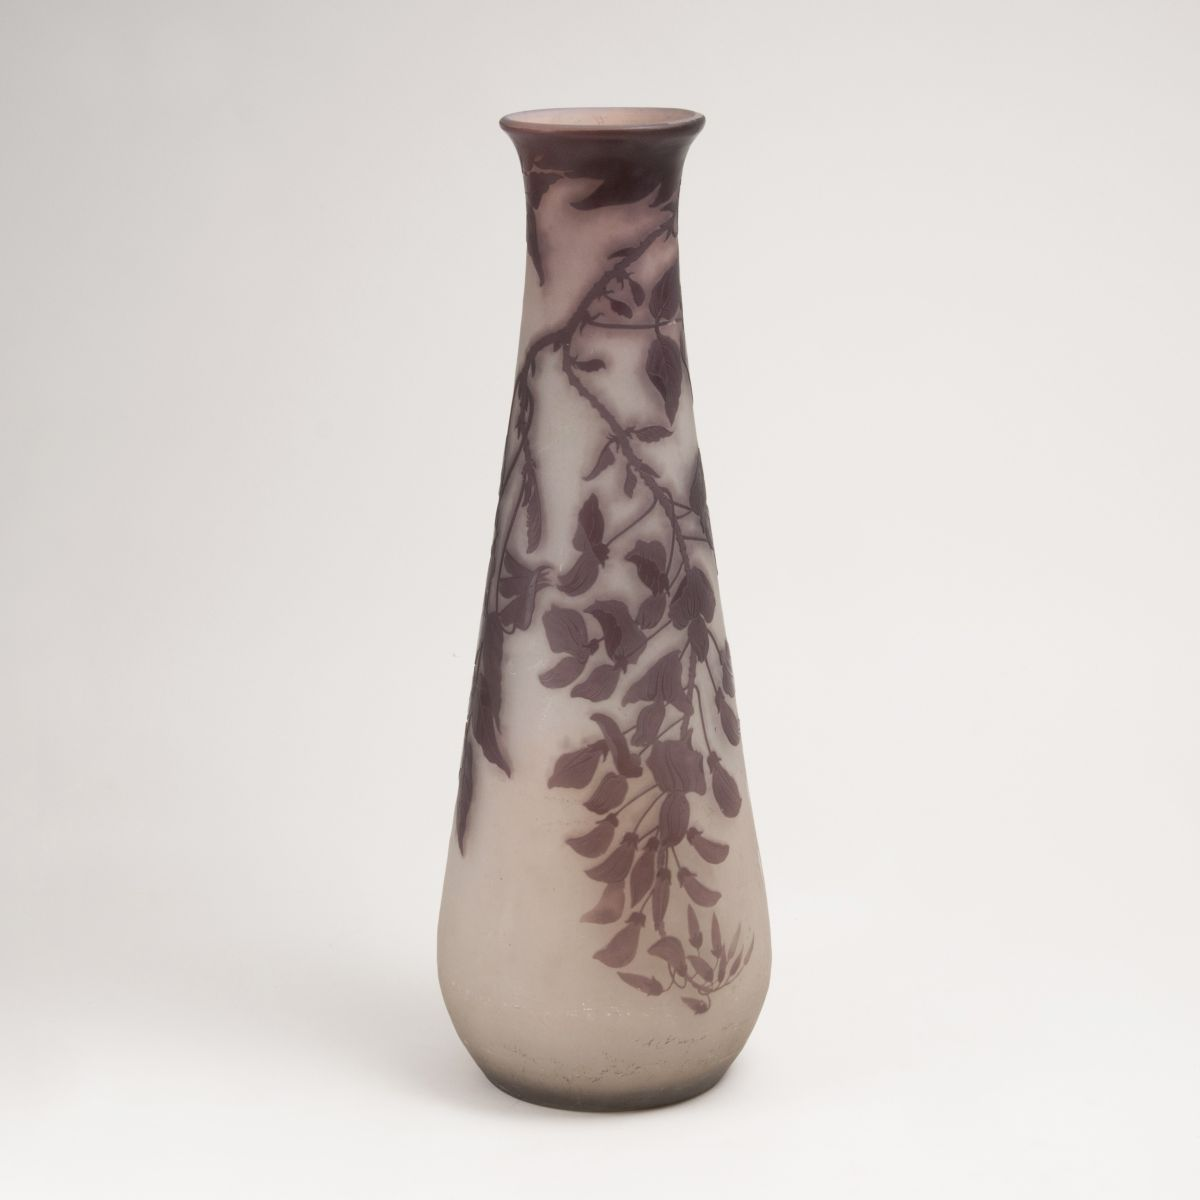 A Large Art Nouveau Gallé Vase with Wisteria